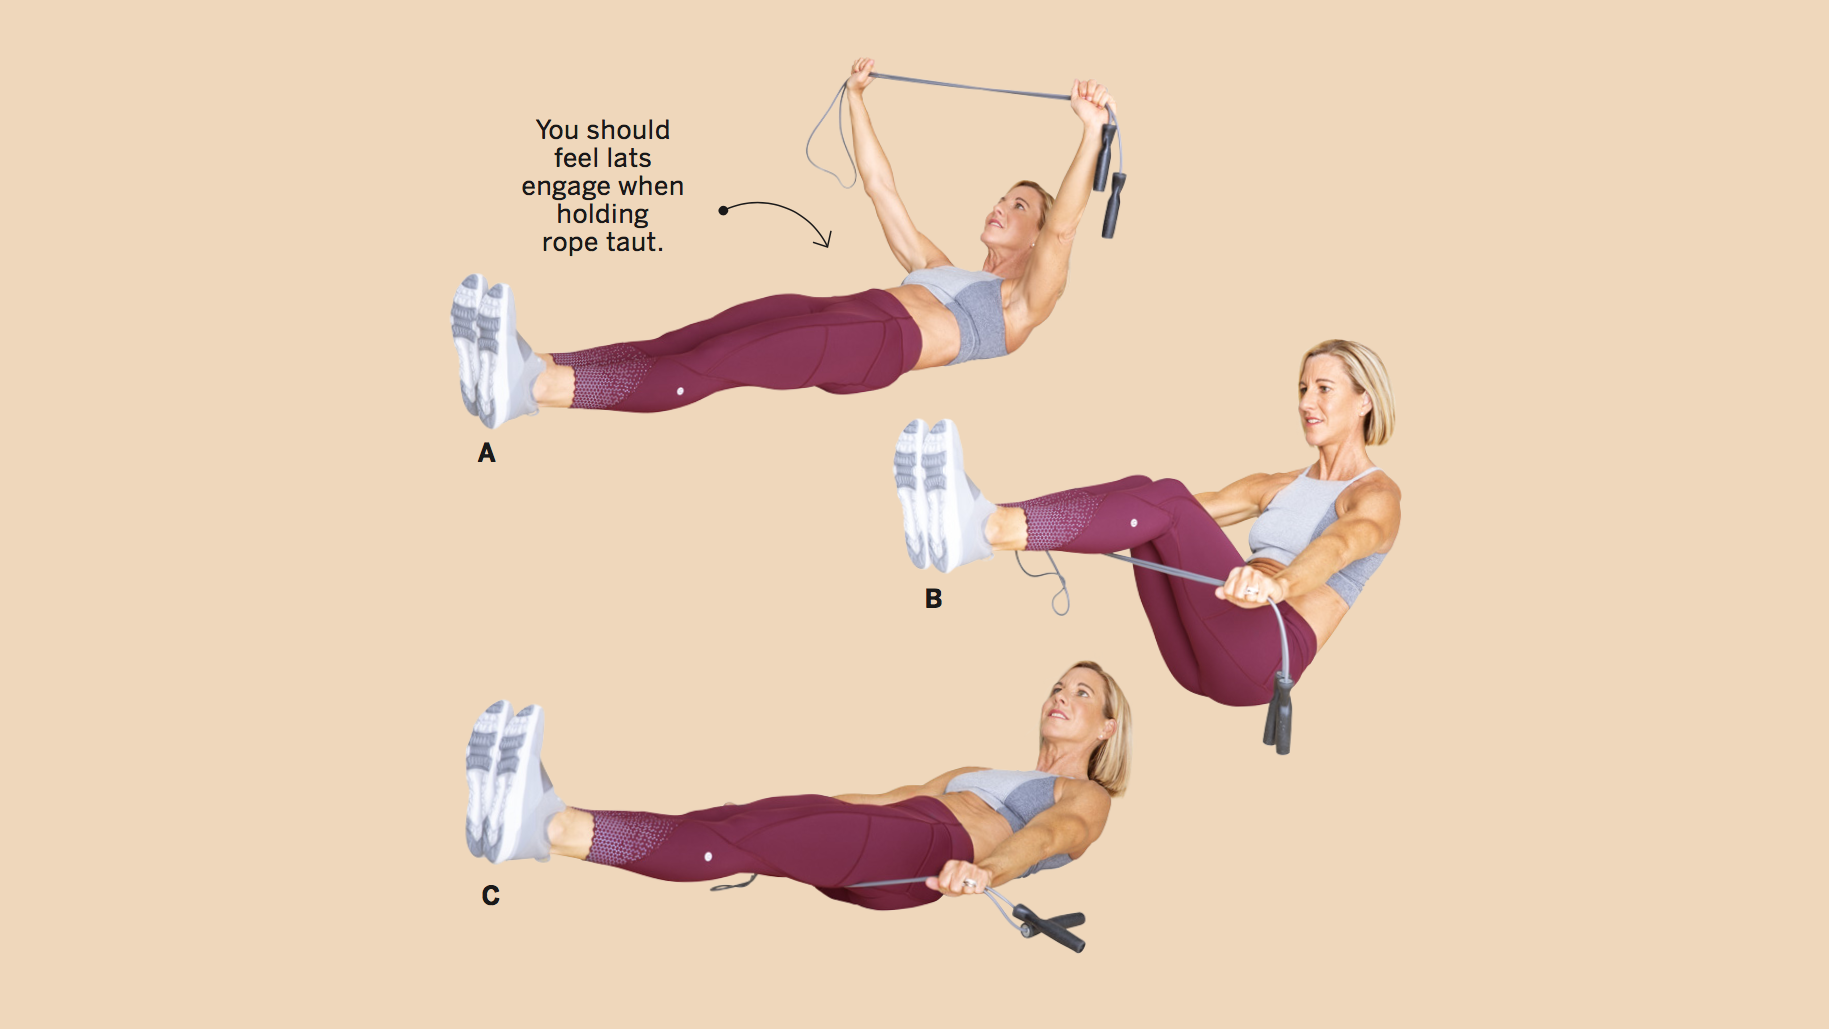 HOLLOW HOLD ROPE CRUNCH